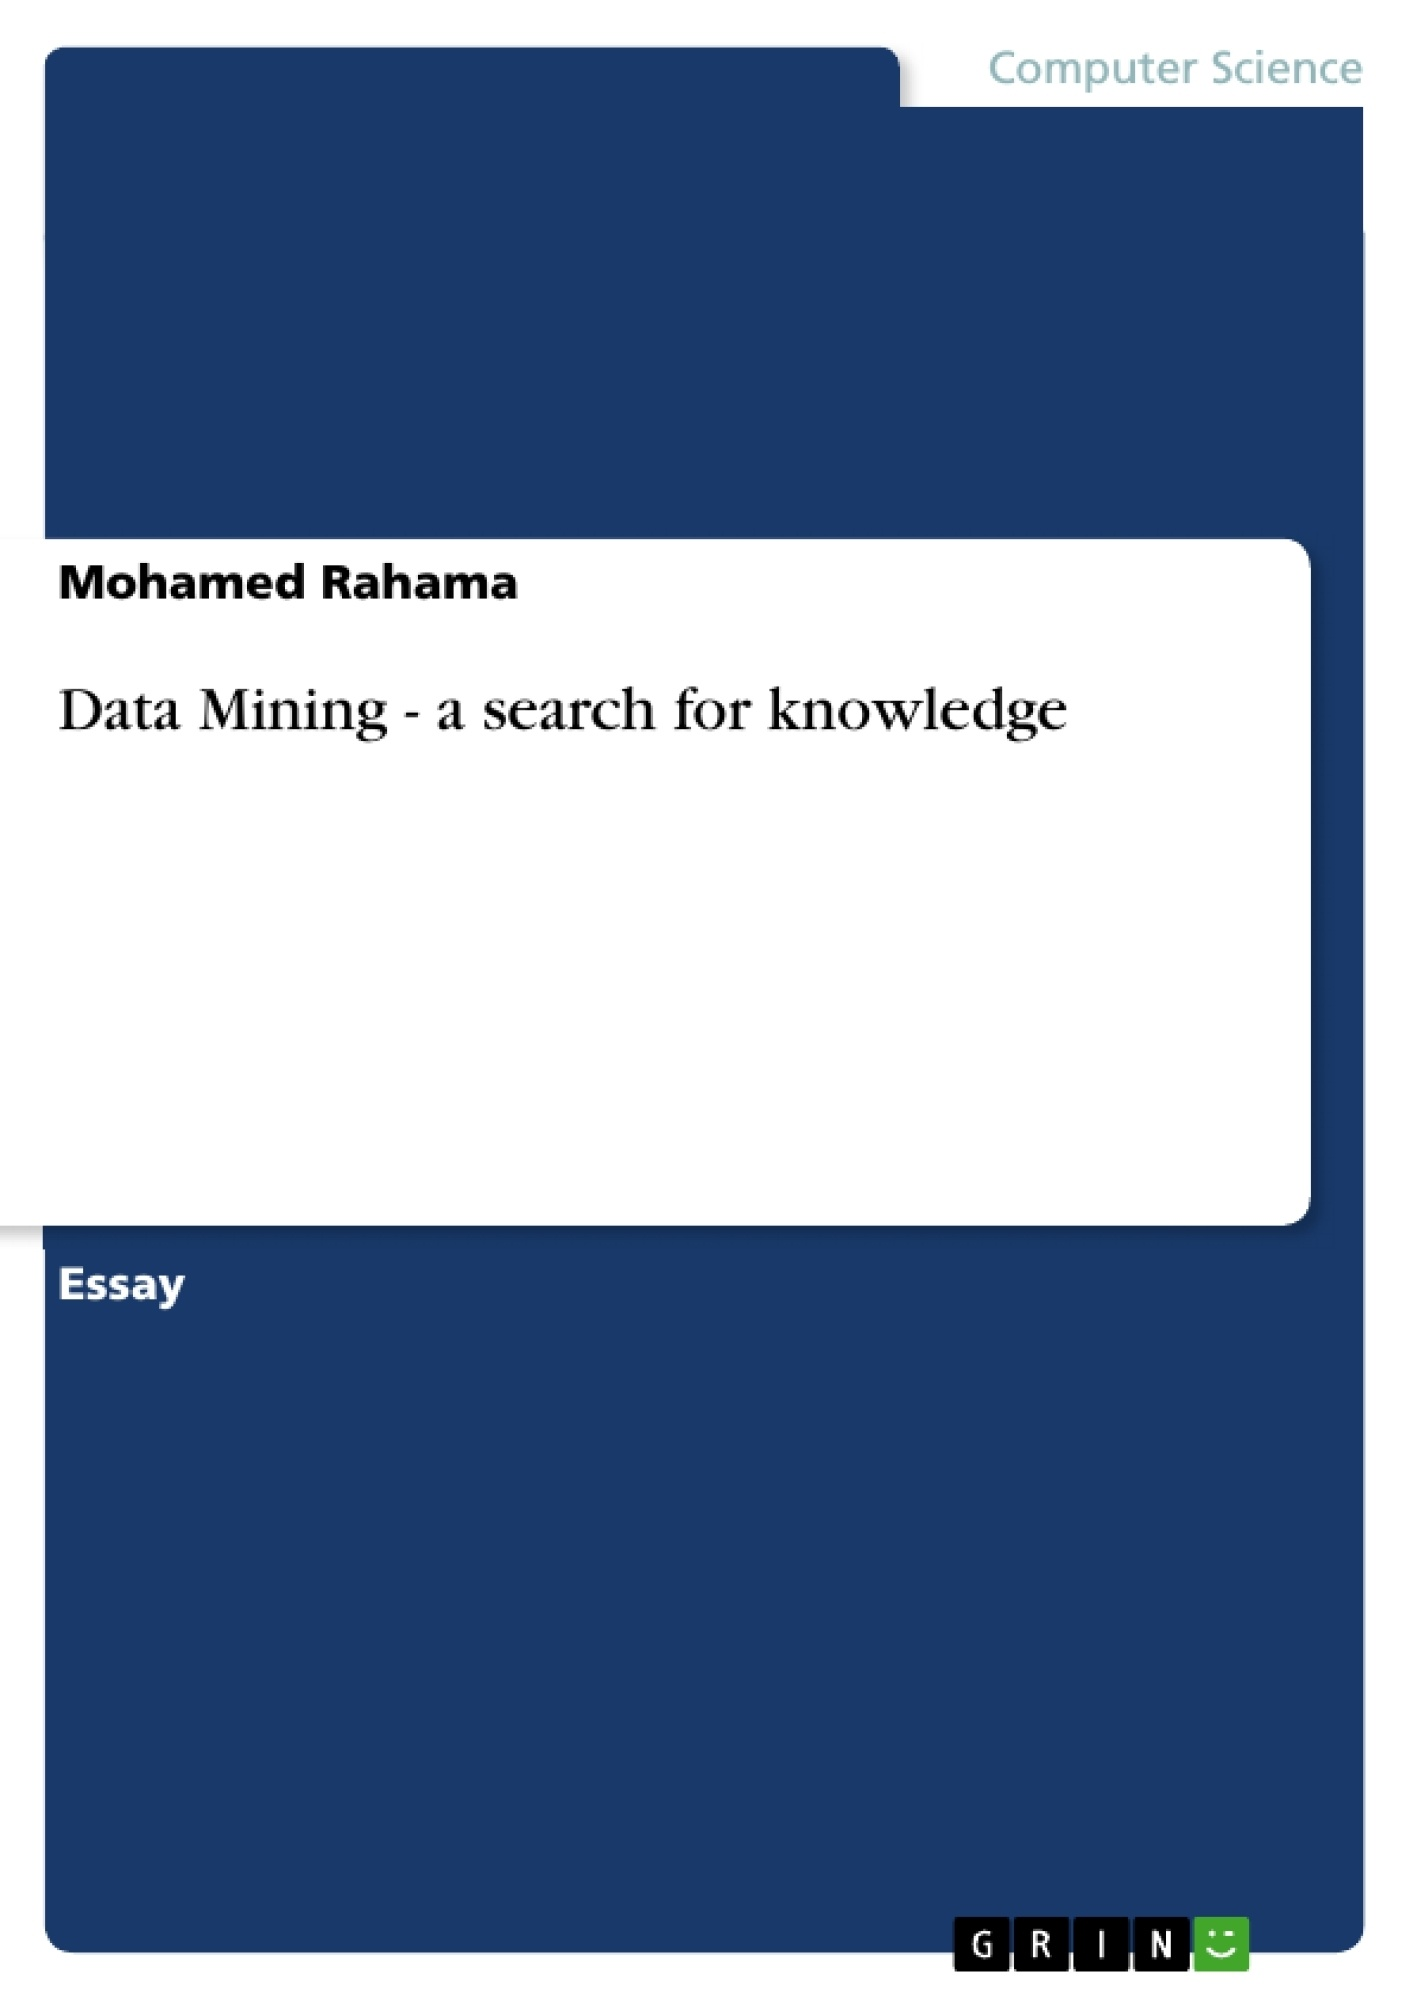 Title: Data Mining - a search for knowledge